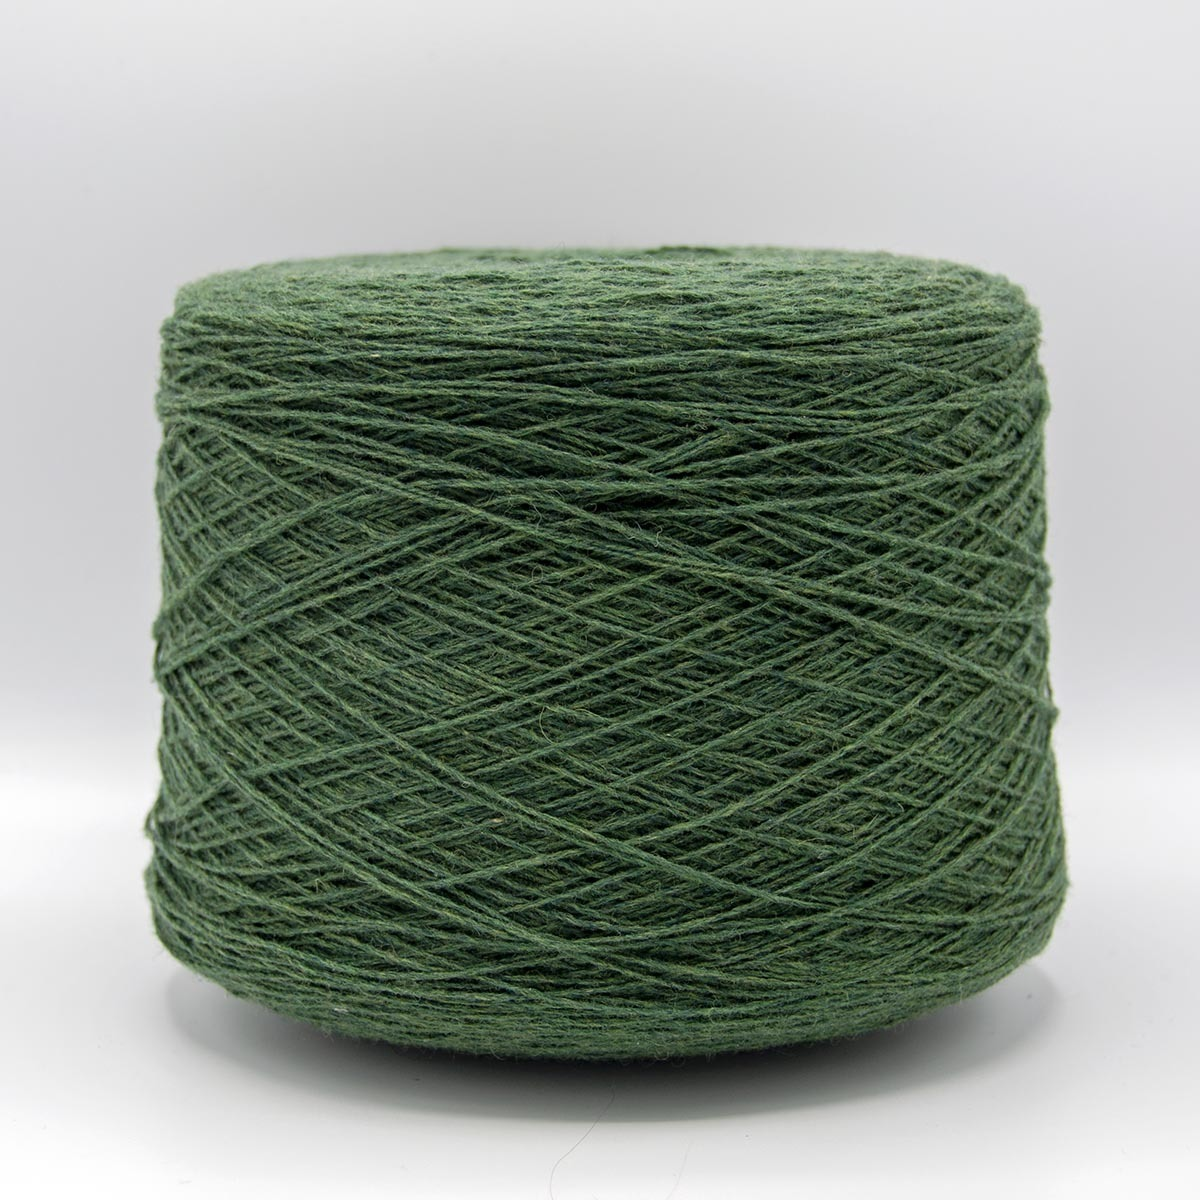 Knoll Yarns Lambswool - 169